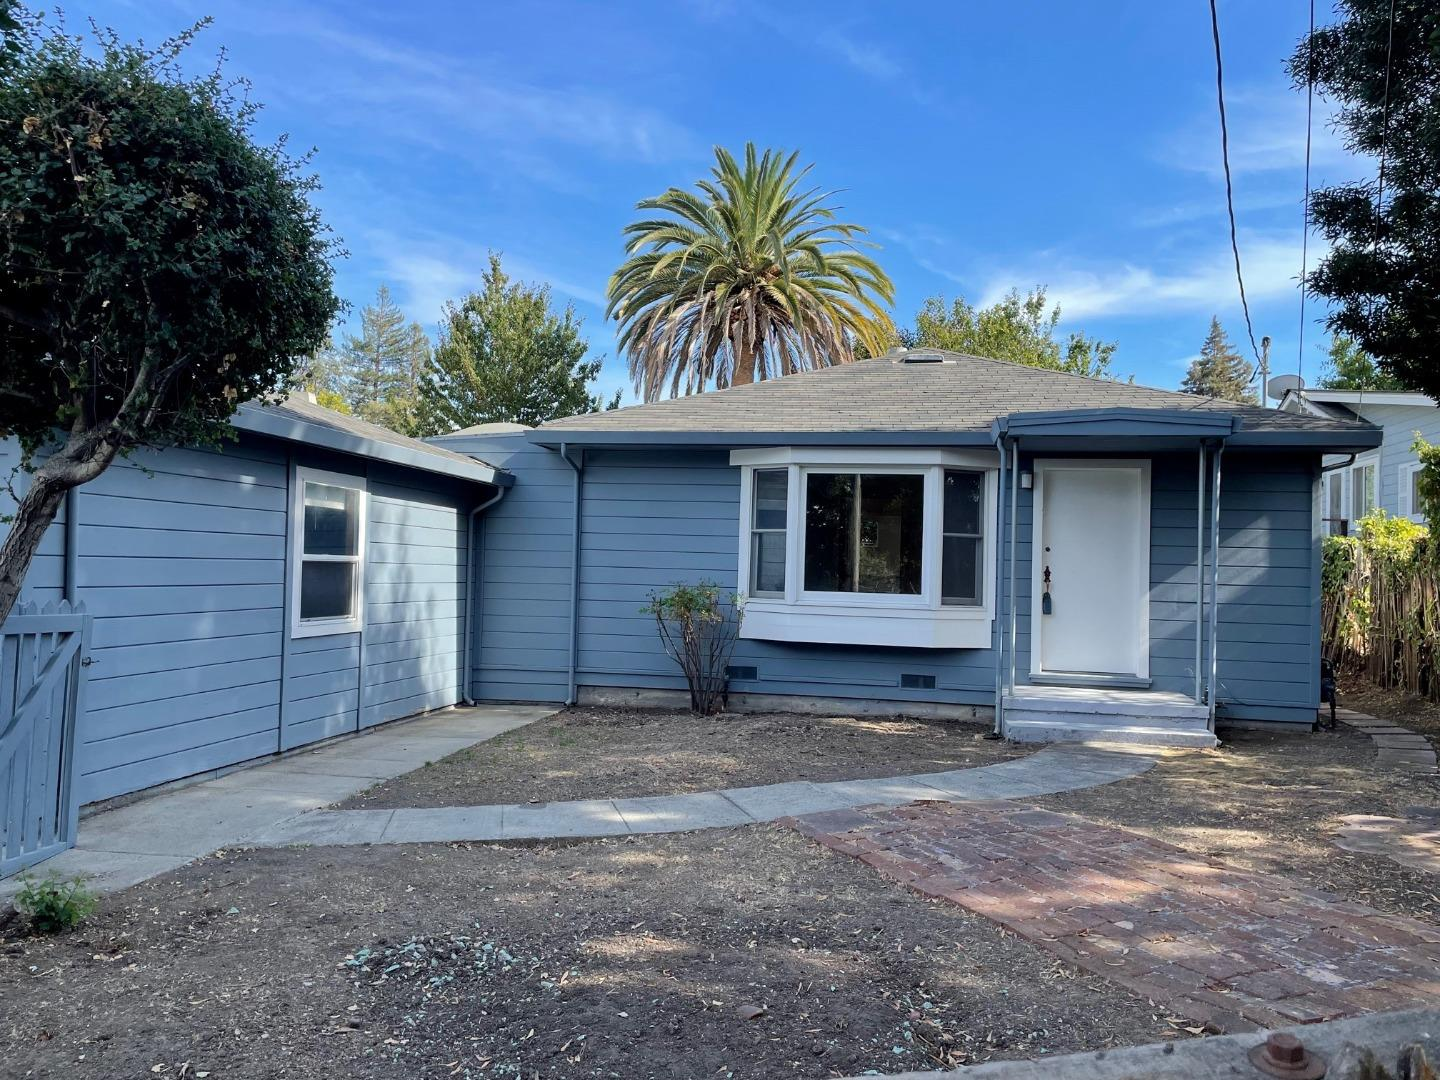 OPEN SUNDAY 2TO4  OCTOBER 10, 2021. DIAMOND IN THE ROUGH! POTENTIAL GALORE TO RENOVATE OR REBUILD THIS CHARMING 2 BEDROOM WITH A DEN/OFFICE / 1 BATHROOM HOME SITUATED ON A LEVEL 6,600 SQ. FT. LOT TUCKED ALONG A QUIET CUL-DE-SAC STREET. FEATURING LOTS OF NATURAL LIGHT, AMPLE CLOSET SPACE, HARDWOOD FLOORS AND A 2 CAR GARAGE, THE BACKYARD IS HIGHLIGHTED BY A MATURE PALM TREE. A SHED AT THE REAR OF THE PROPERTY OFFERS LOTS OF EXTRA STORAGE SPACE AND A CONVERTED PORCH OFF THE DINING AREA PROVIDES ADDITIONAL ACCESS TO THE YARD, MAKING ENTERTAINING A BREEZE. CONVENIENTLY LOCATED CLOSE TO 280, WOODSIDE RD., THE ALAMEDA, SHOPS & RESTAURANTS AND JUST STEPS FROM ATHERTON! BRING YOUR IDEAS AND/OR YOUR PLANS, THIS OPPORTUNITY WONT LAST LONG!